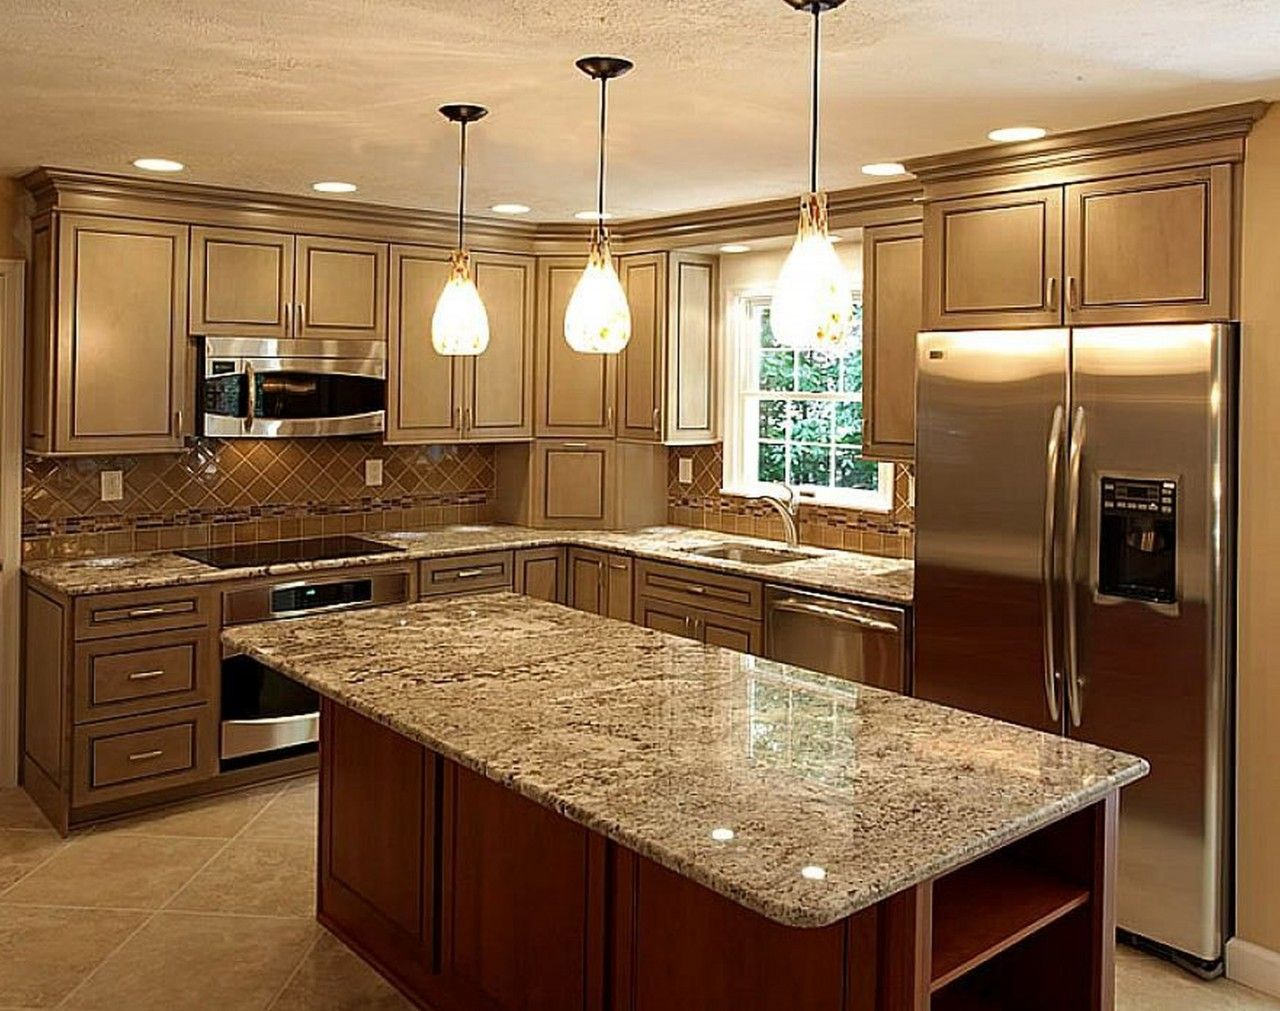 Endearing home depot quartz countertops build magnificent cambria quartz countertops colors wonderful element ambience brown